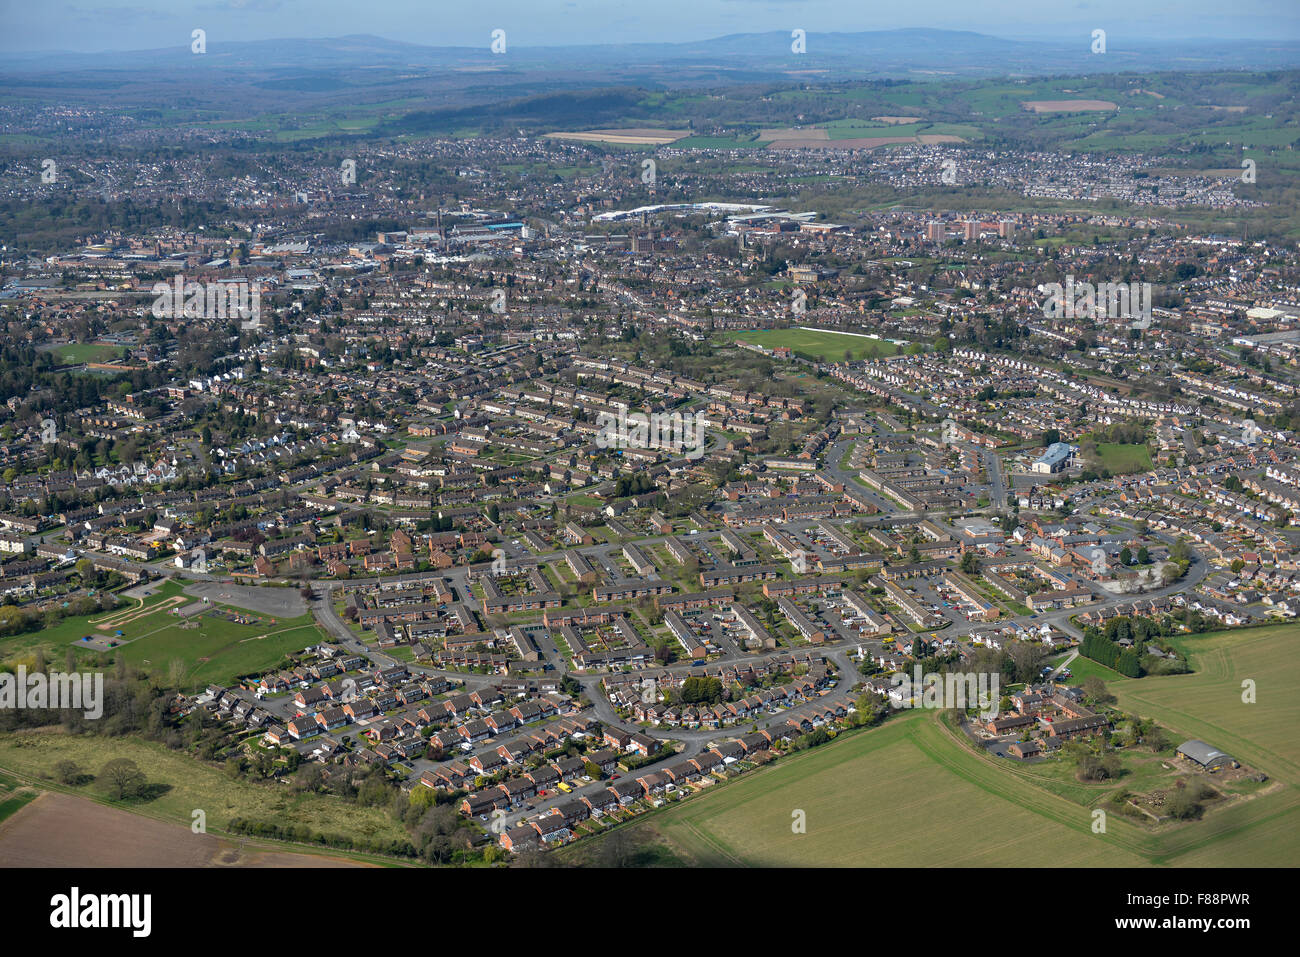 An aerial view of the Worcestershire town of Kidderminster - Stock Image